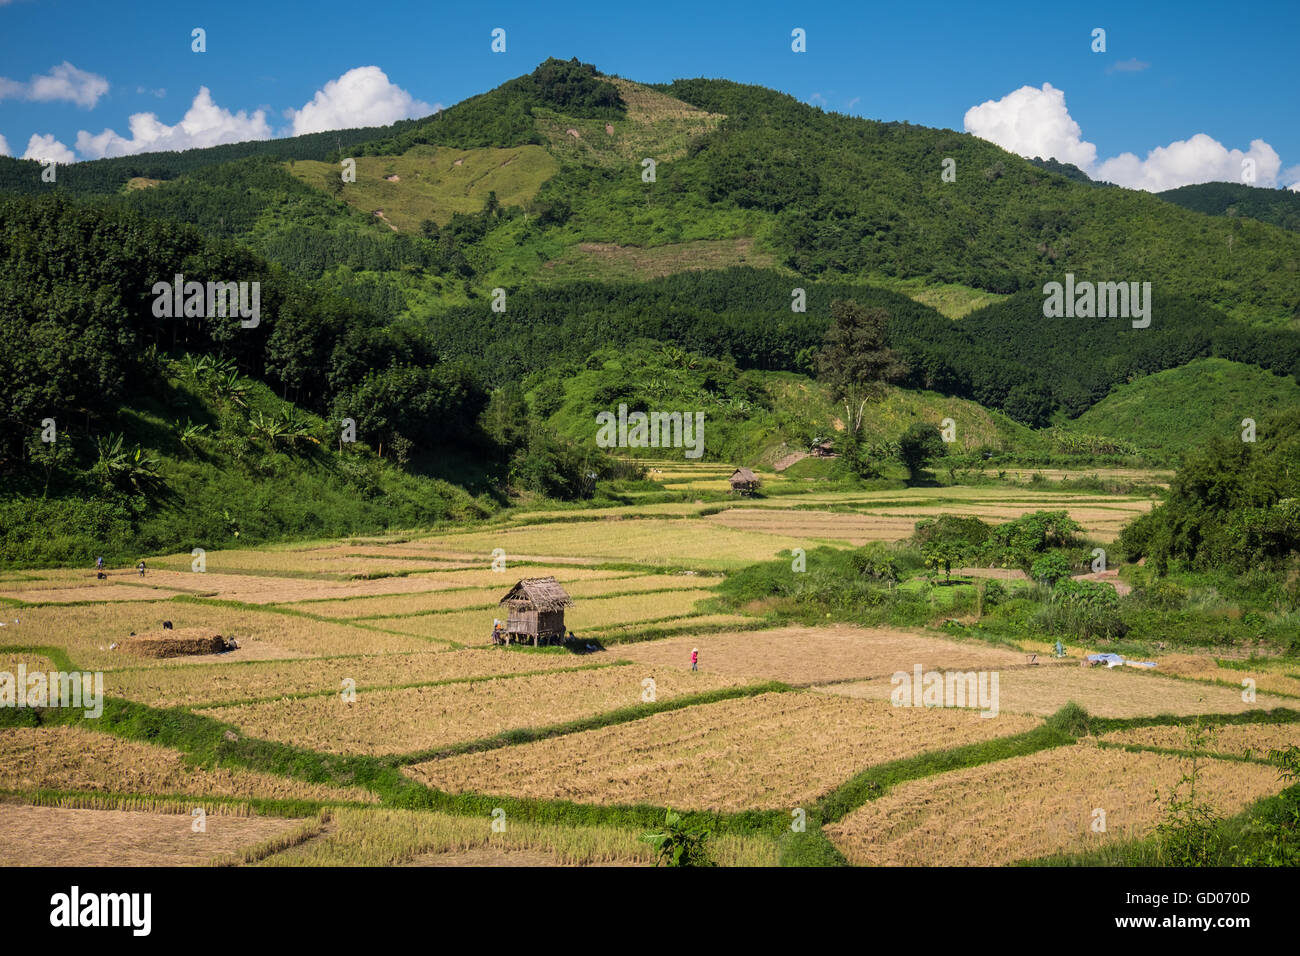 People harvesting rice in the hot afternoon sun near Luang Namtha, Laos PDR - Stock Image